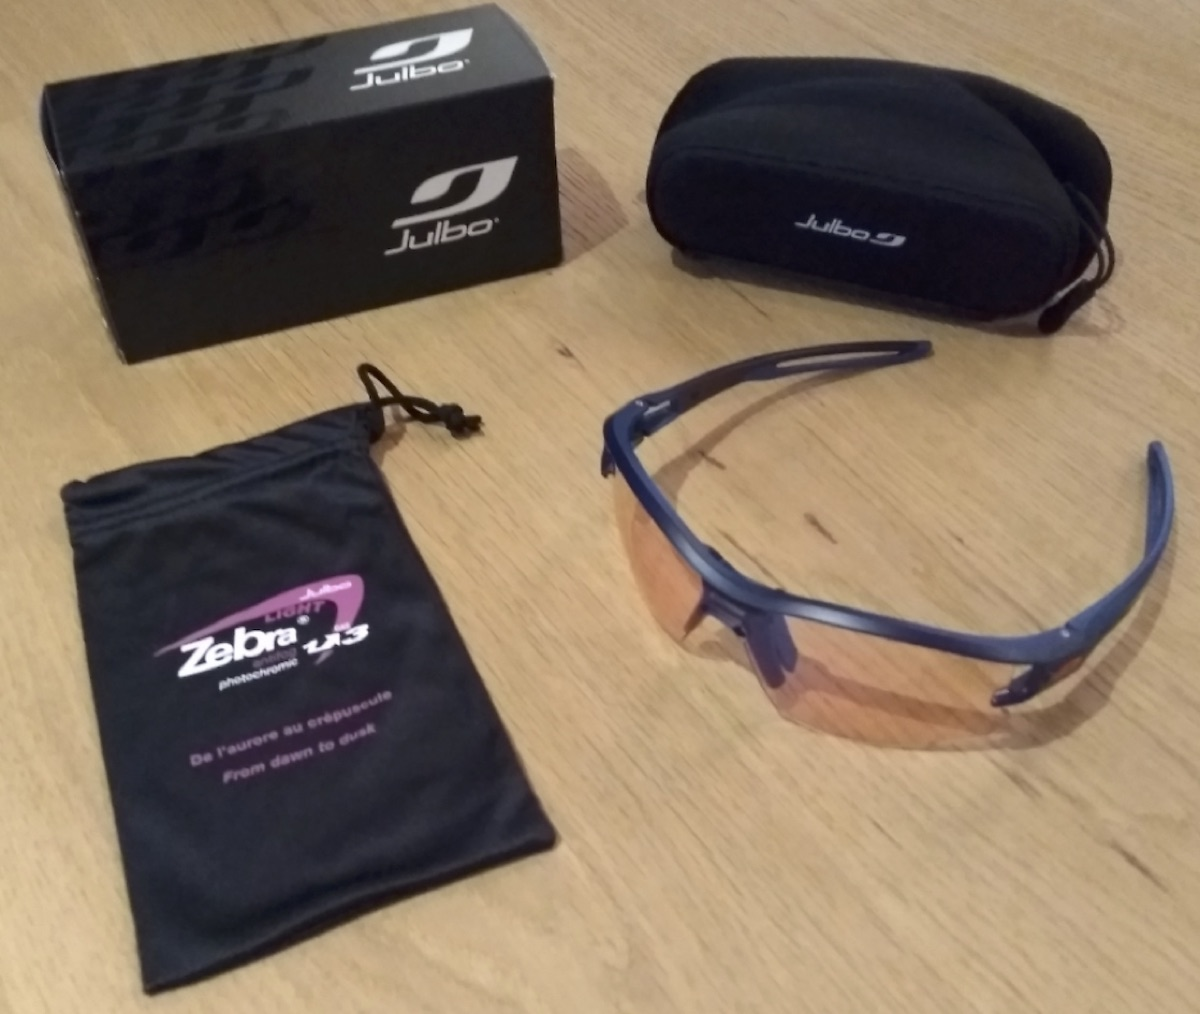 972e324a61 Julbo Aero Zebra Light : le test